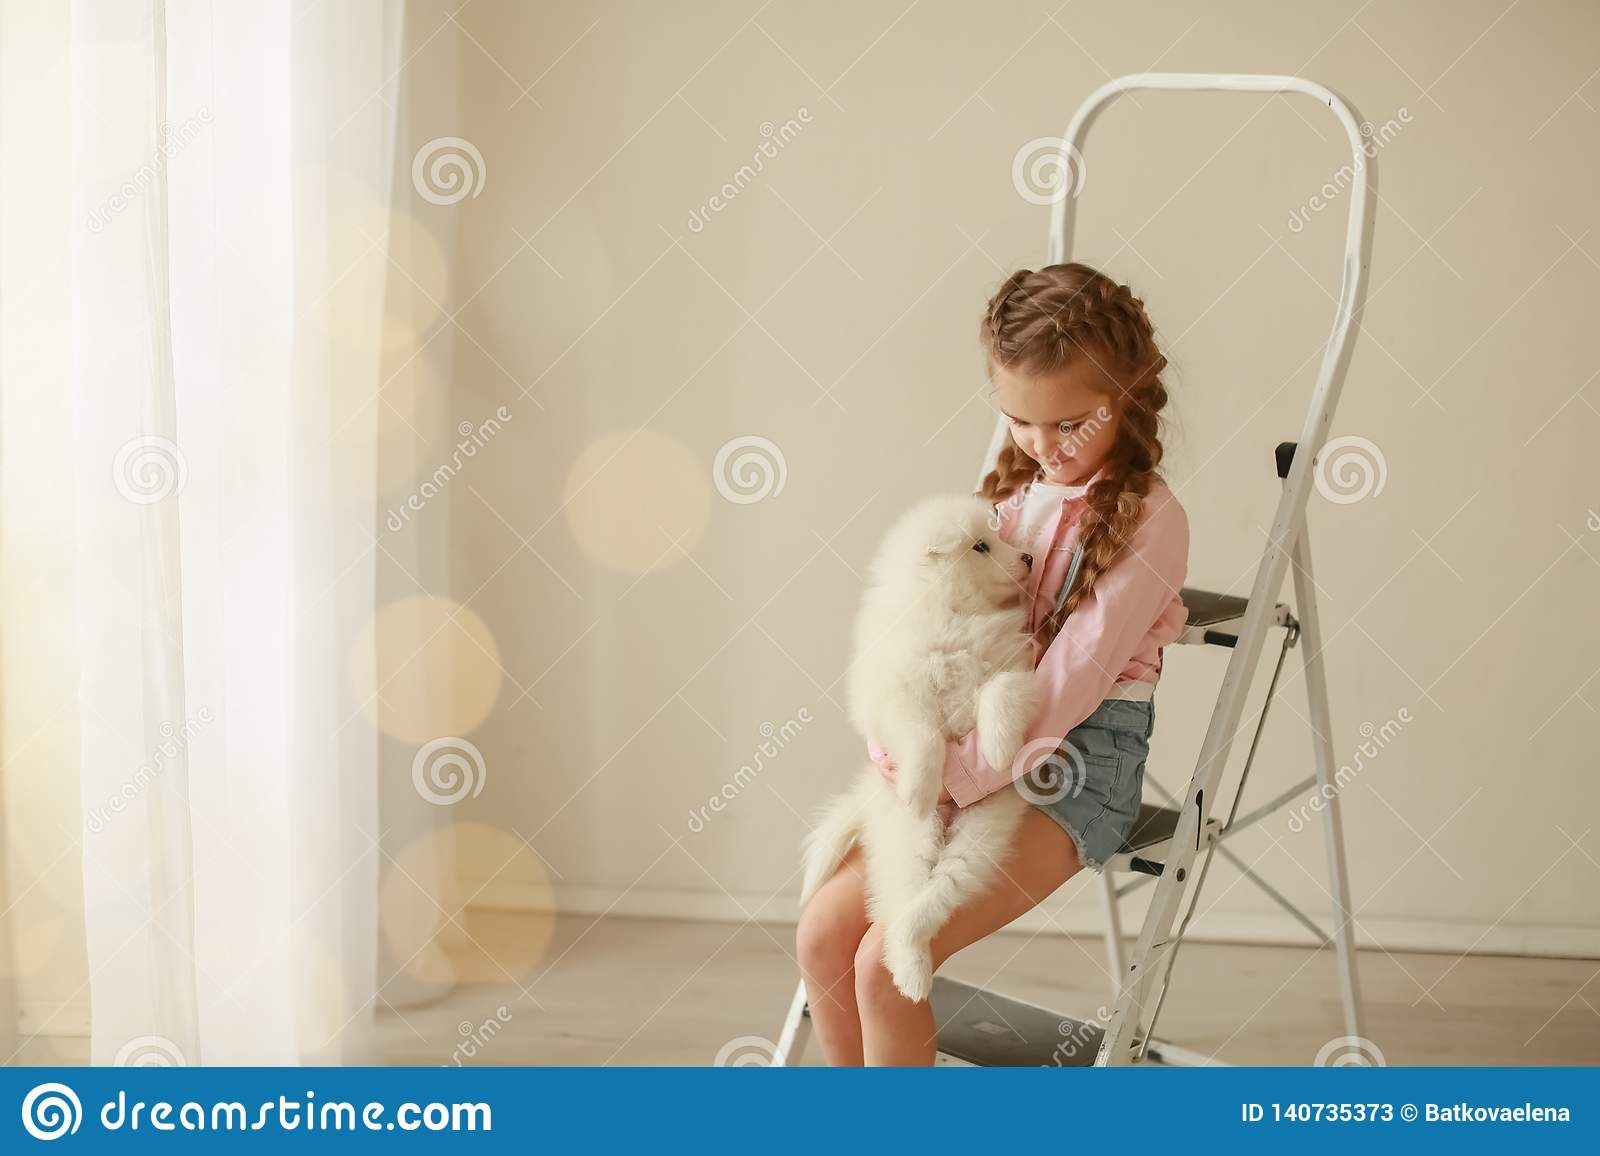 Baby Hugs the white fluffy puppy. Kids